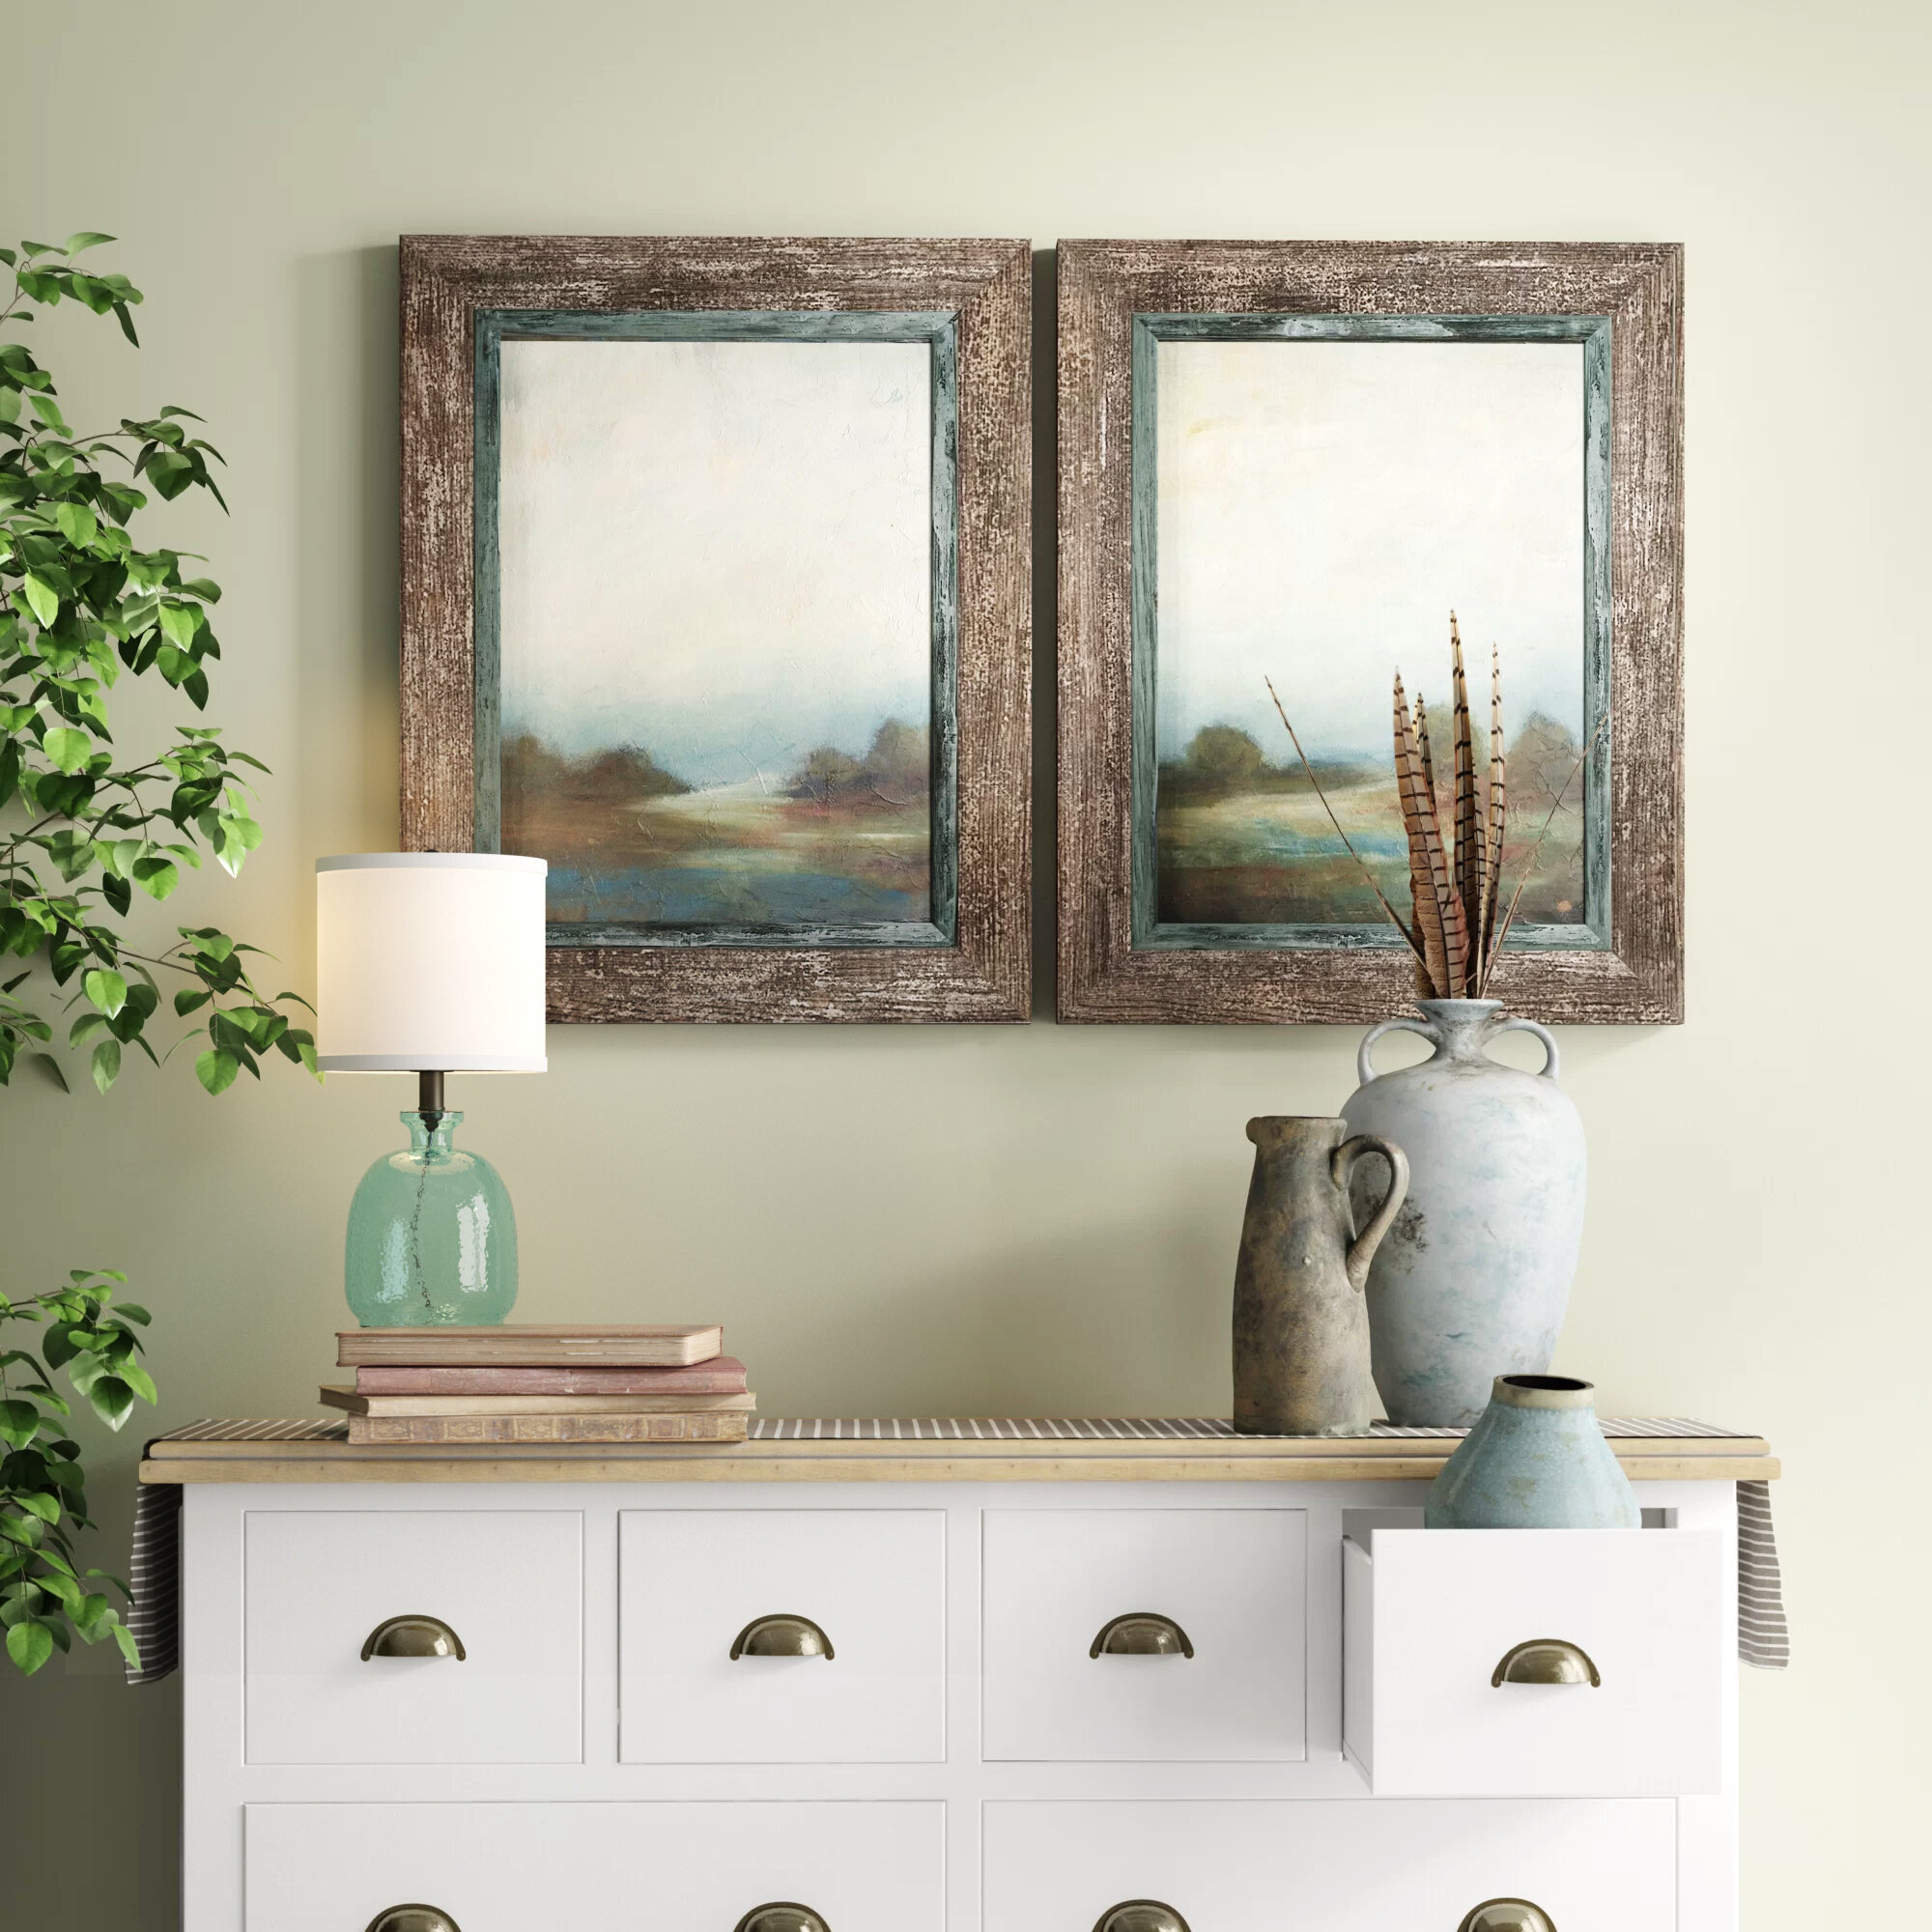 Farmhouse & Rustic Framed Wall Art | Birch Lane with 3 Piece Magnolia Brown Panel Wall Decor Sets (Image 13 of 30)